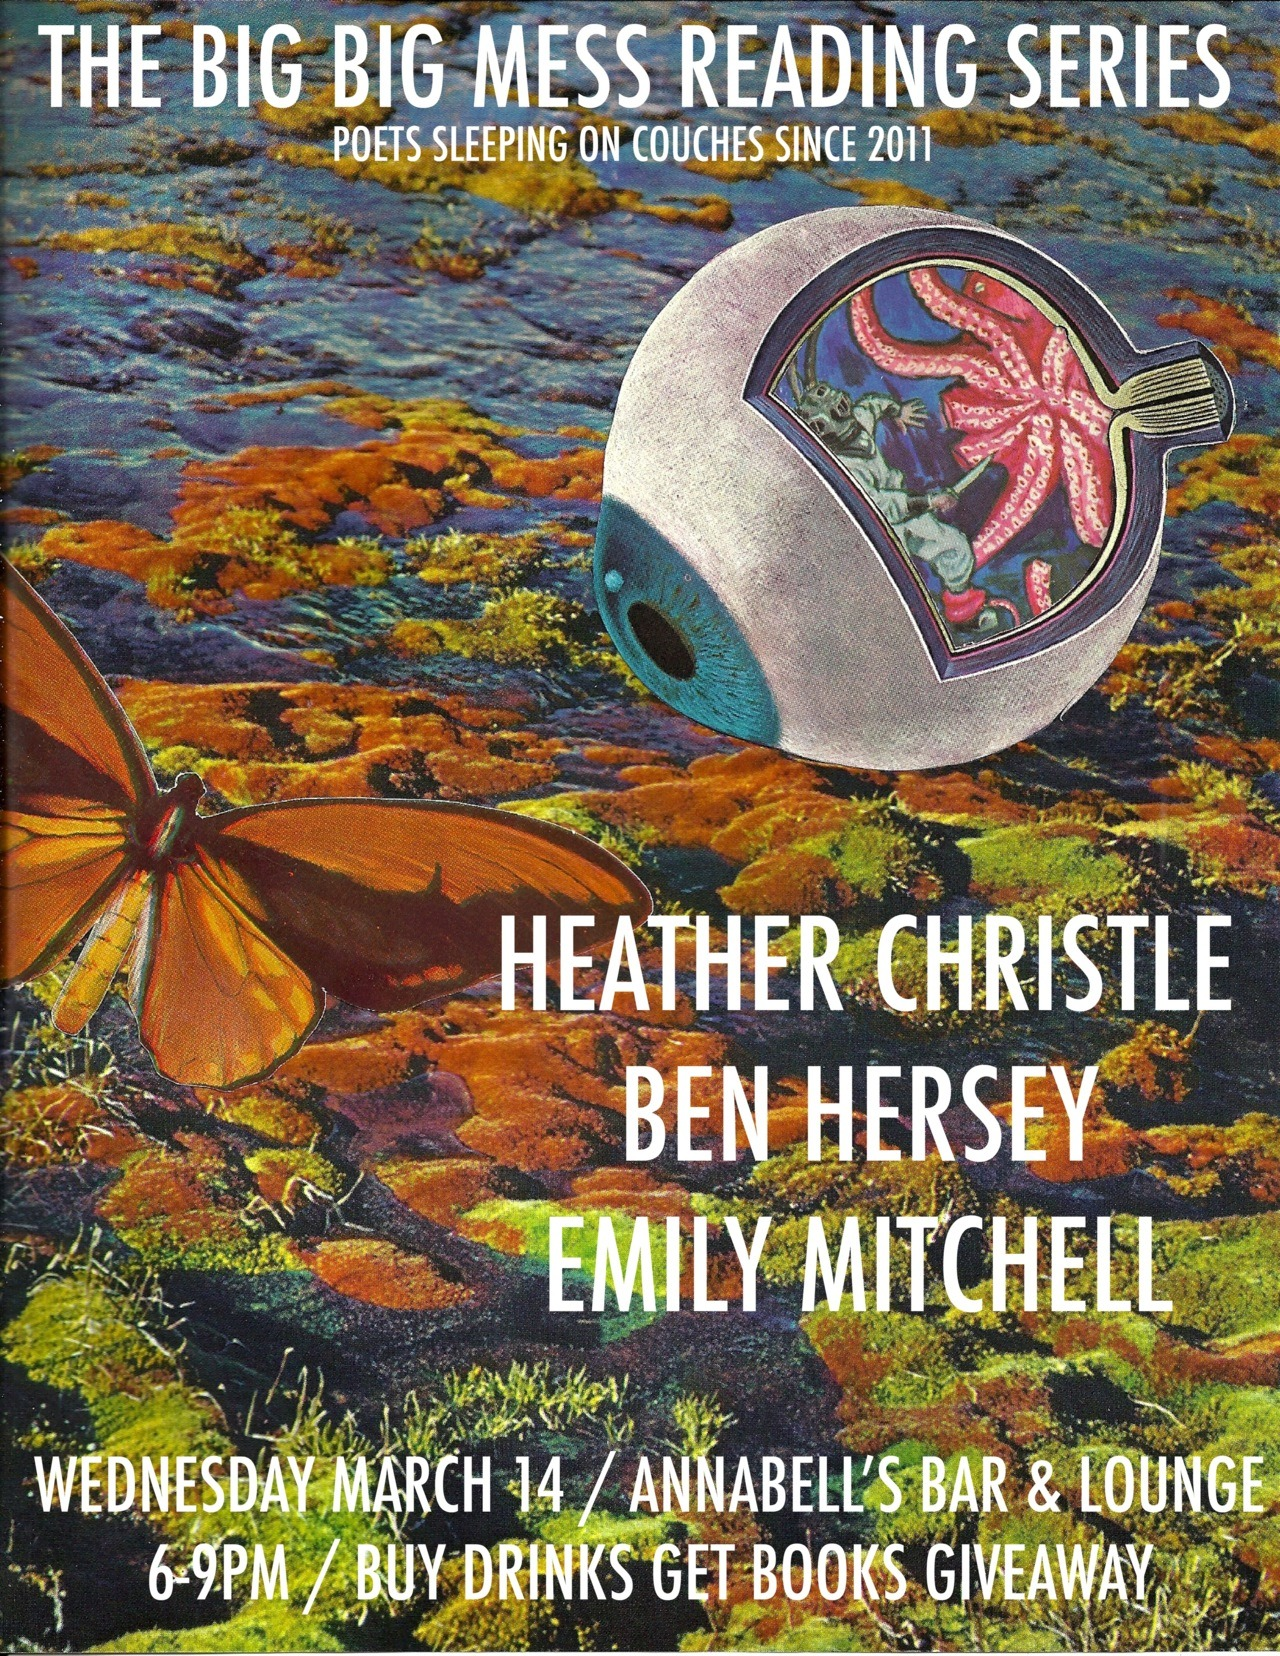 Wednesday March 14 / 6-9pm / Featuring Heather Christle, Ben Hersey, & Emily Mitchell